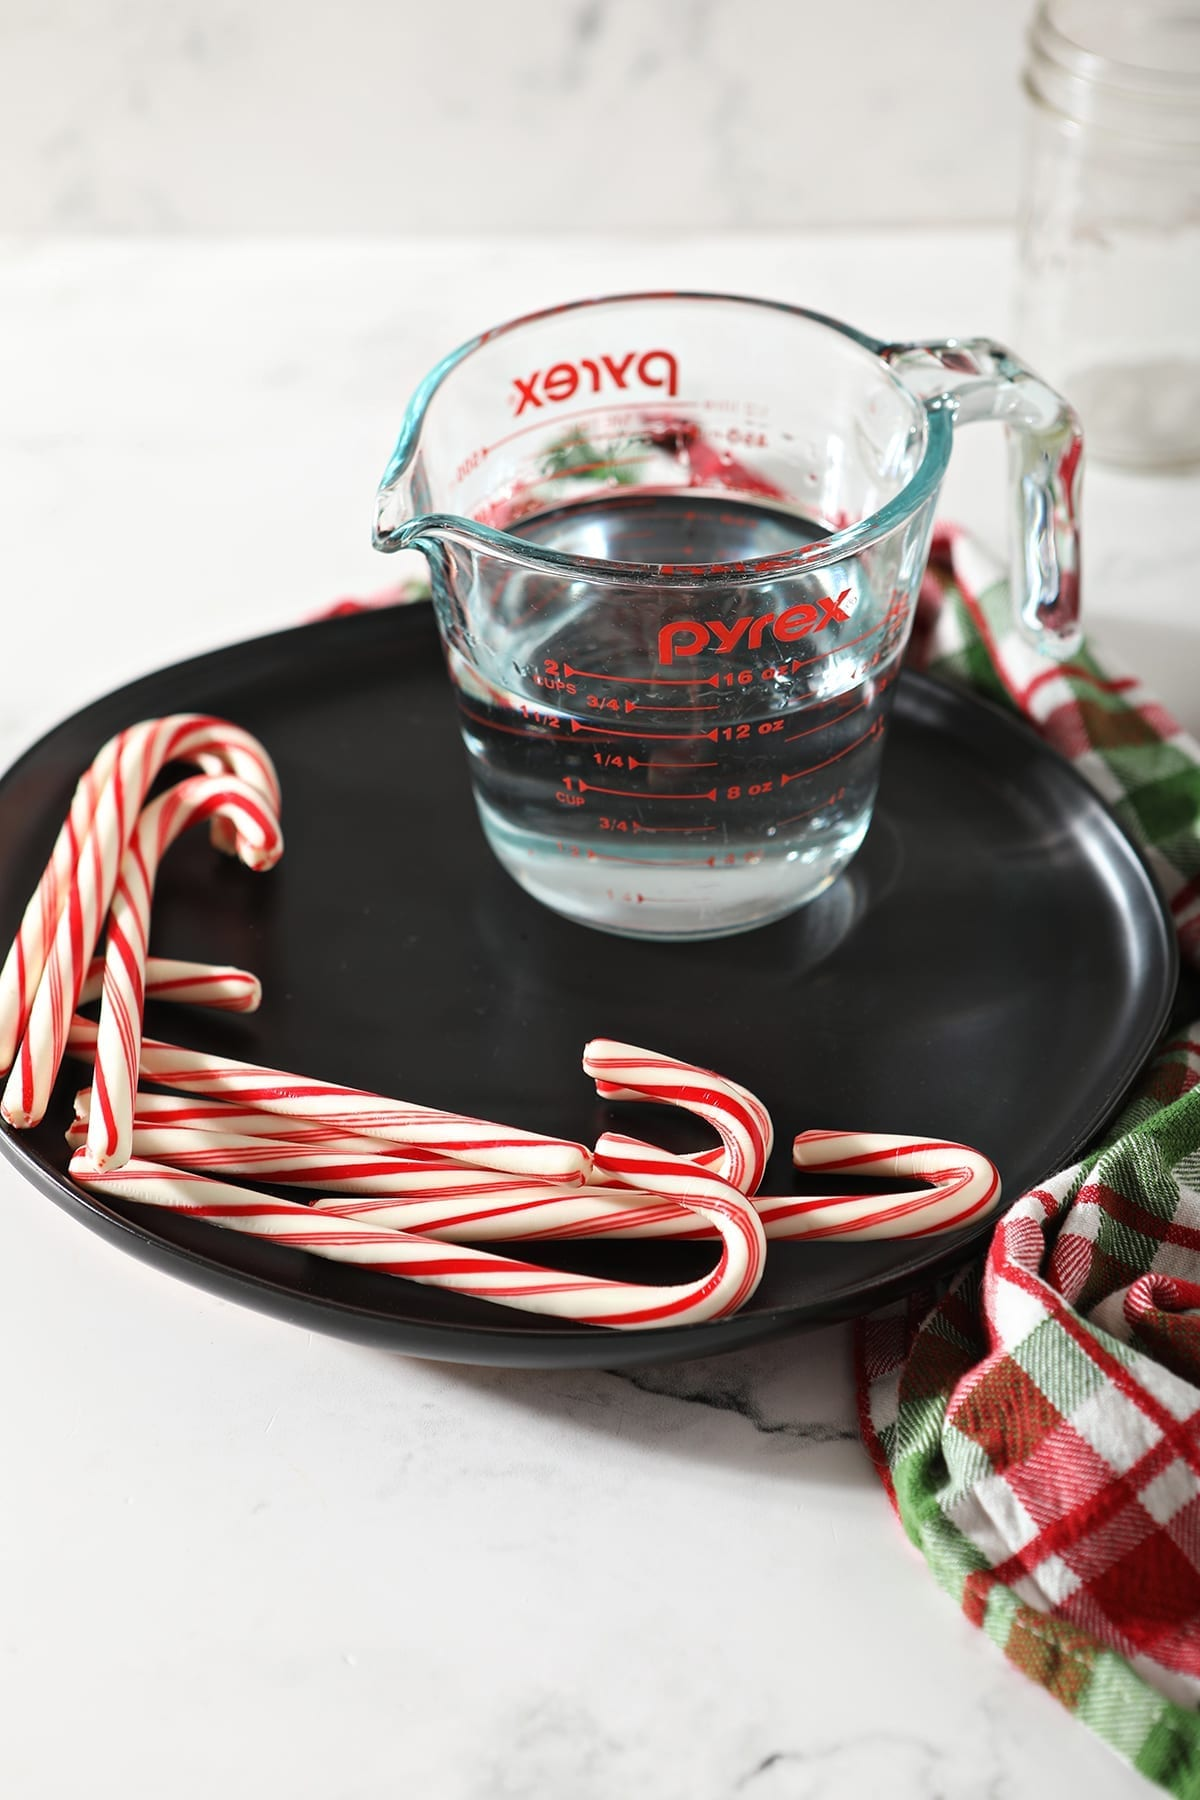 a measuring cup with peppermint vodka on a black plate with peppermint sticks